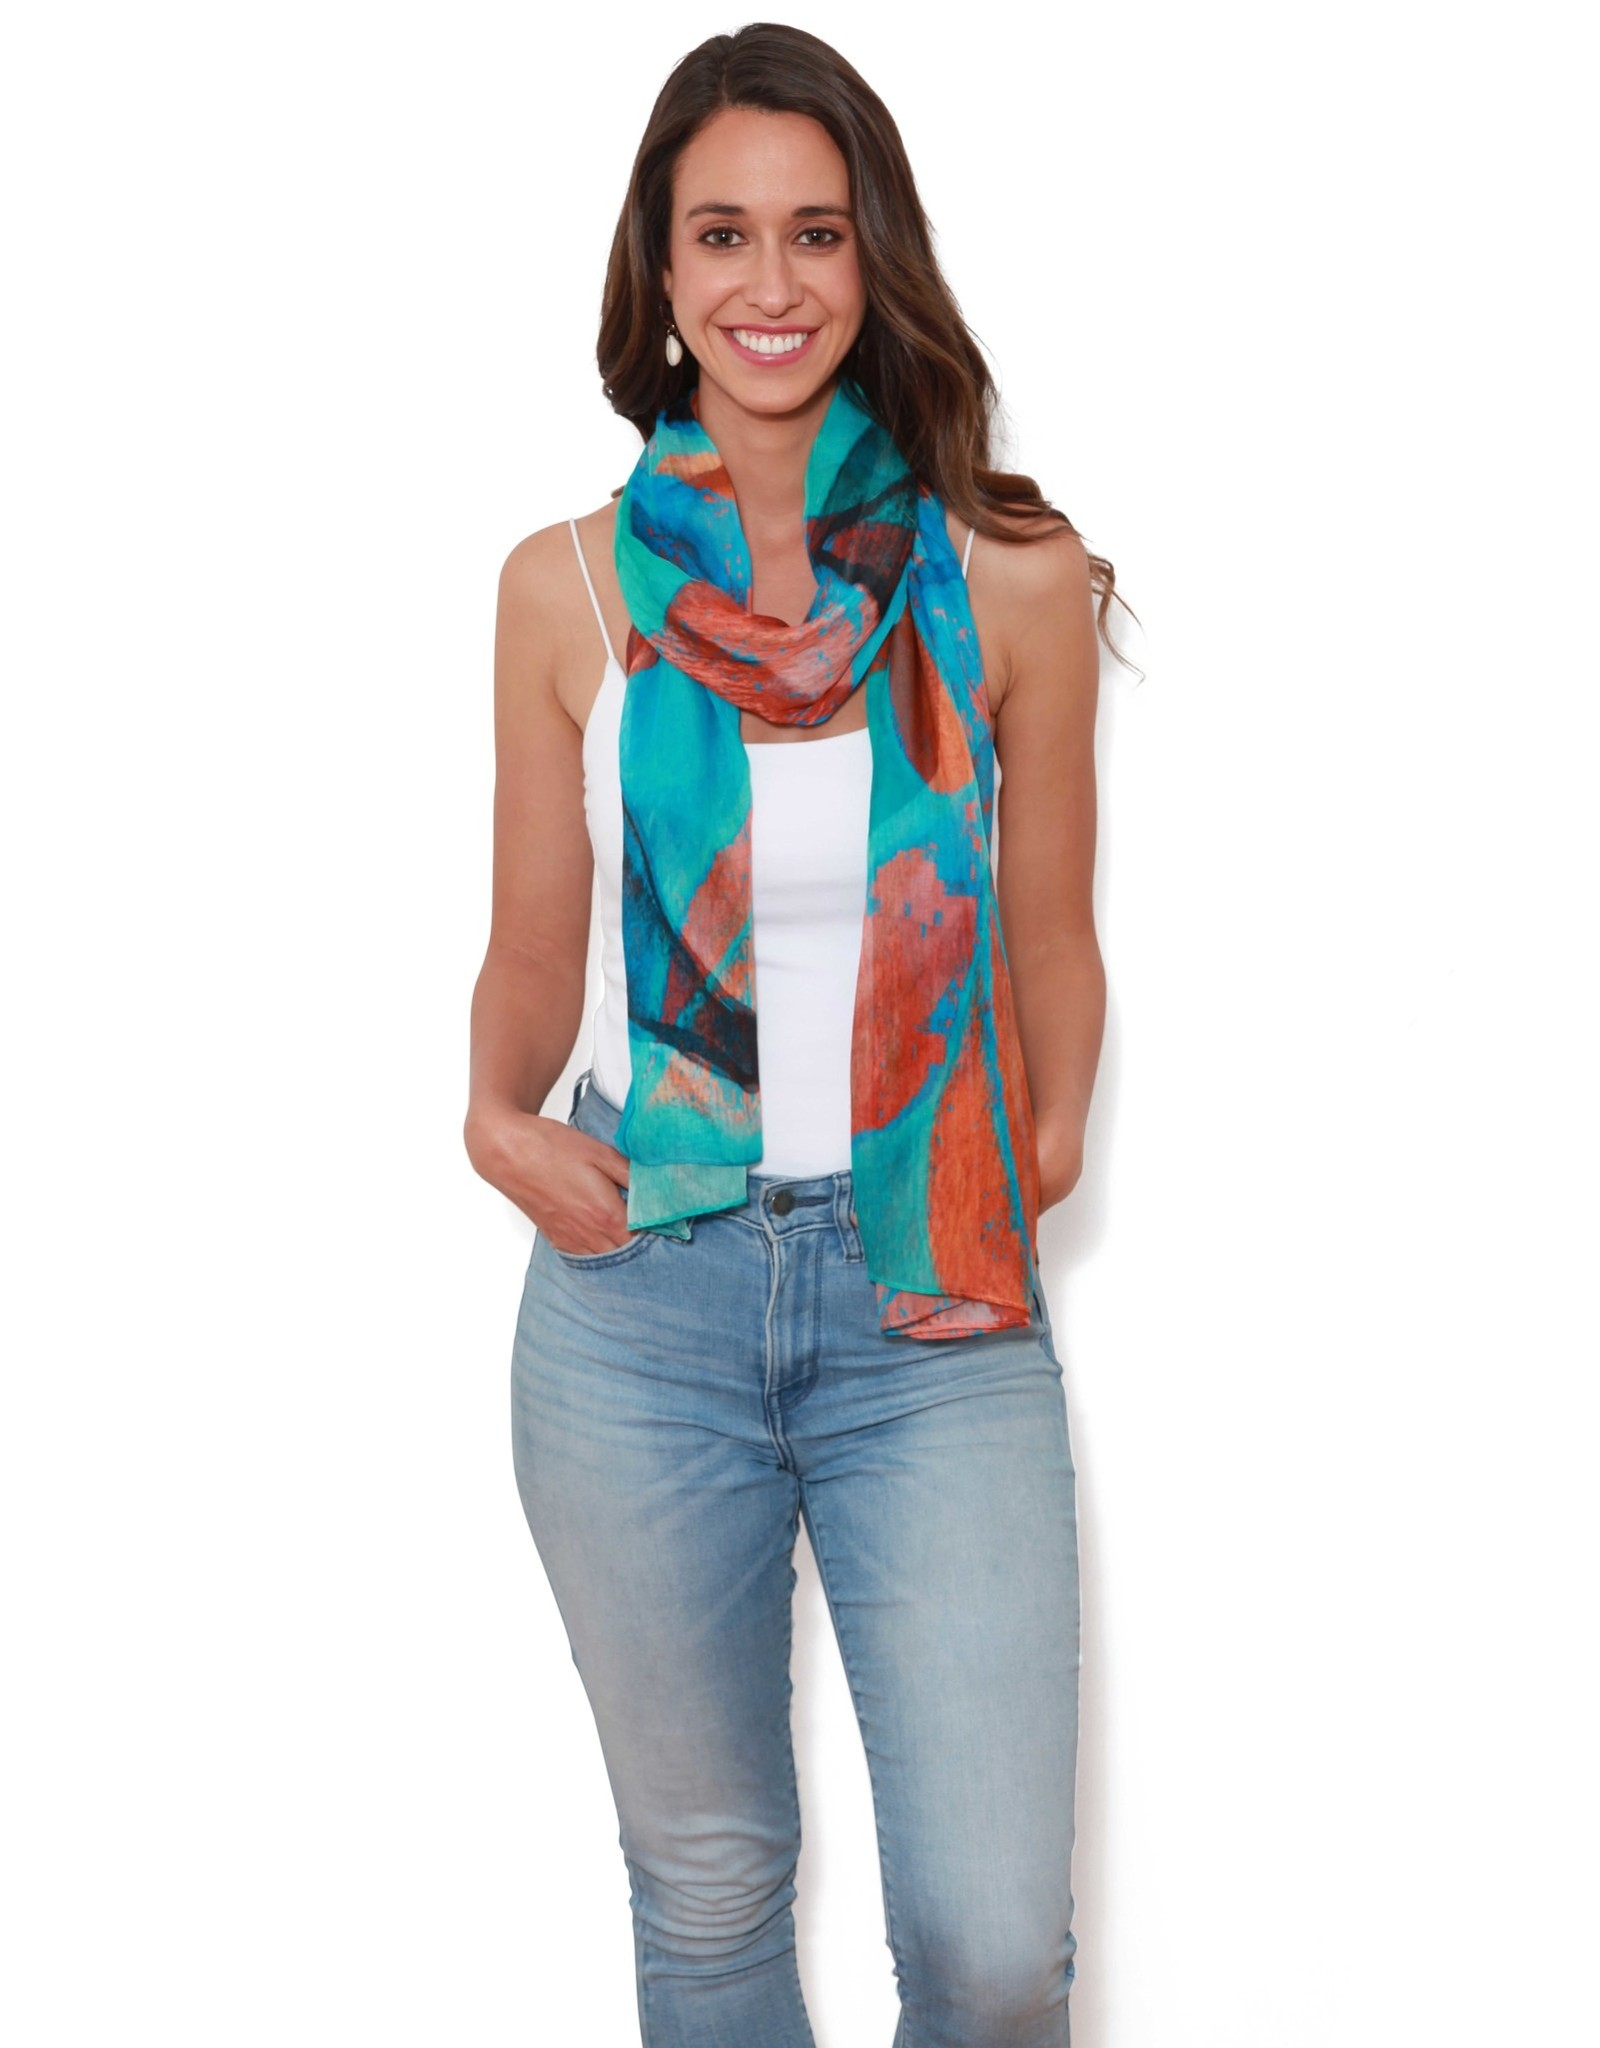 The Artists Label Turquoise Dream Scarf